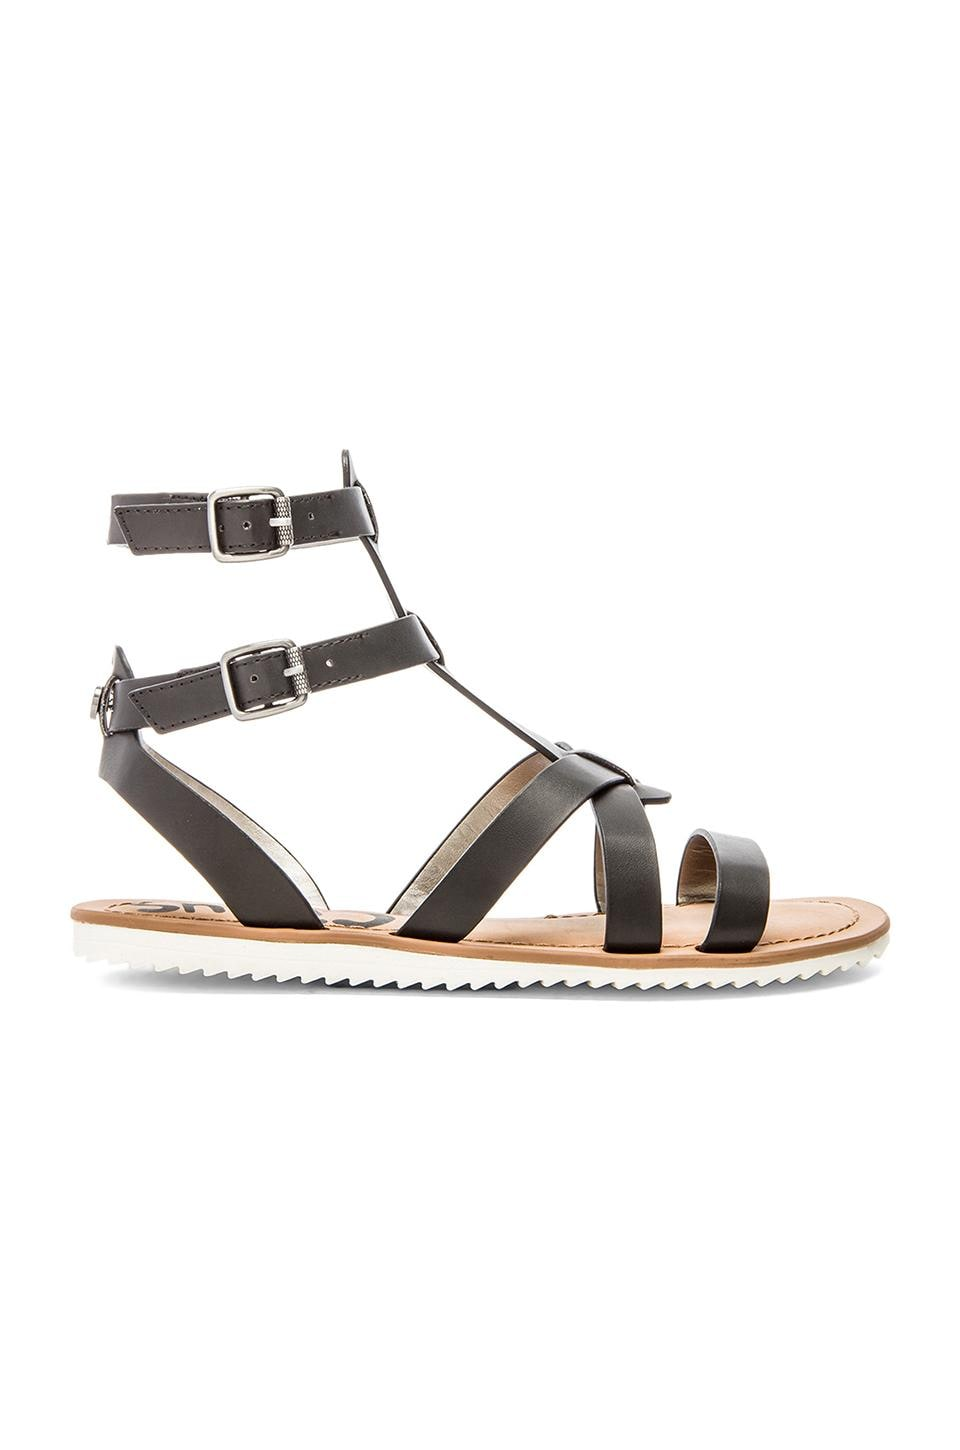 Circus by Sam Edelman Selma Sandal in Black